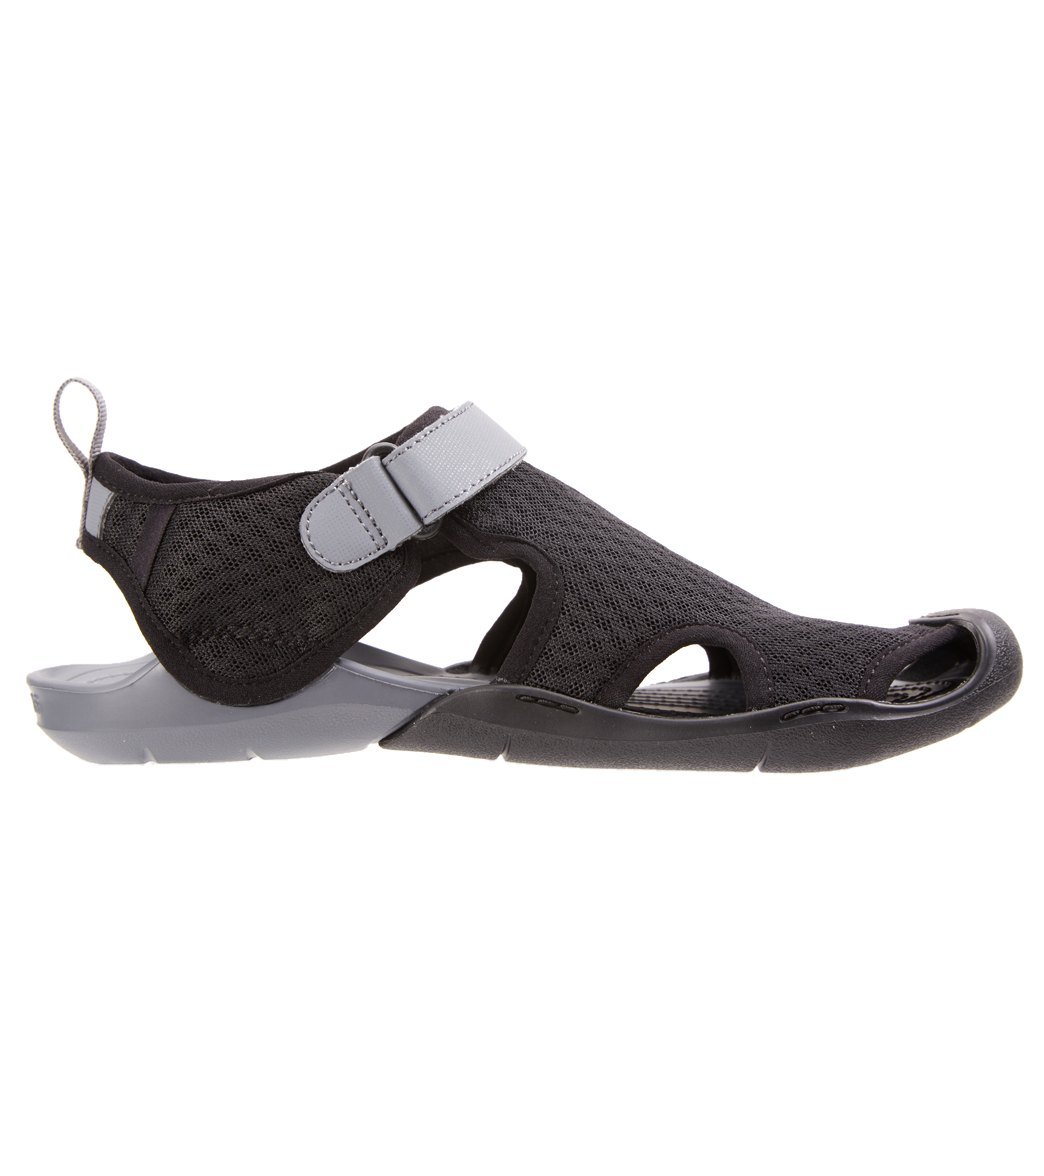 2bfb278a4f13 Crocs Women s Swiftwater Mesh Water Shoe at SwimOutlet.com - Free ...